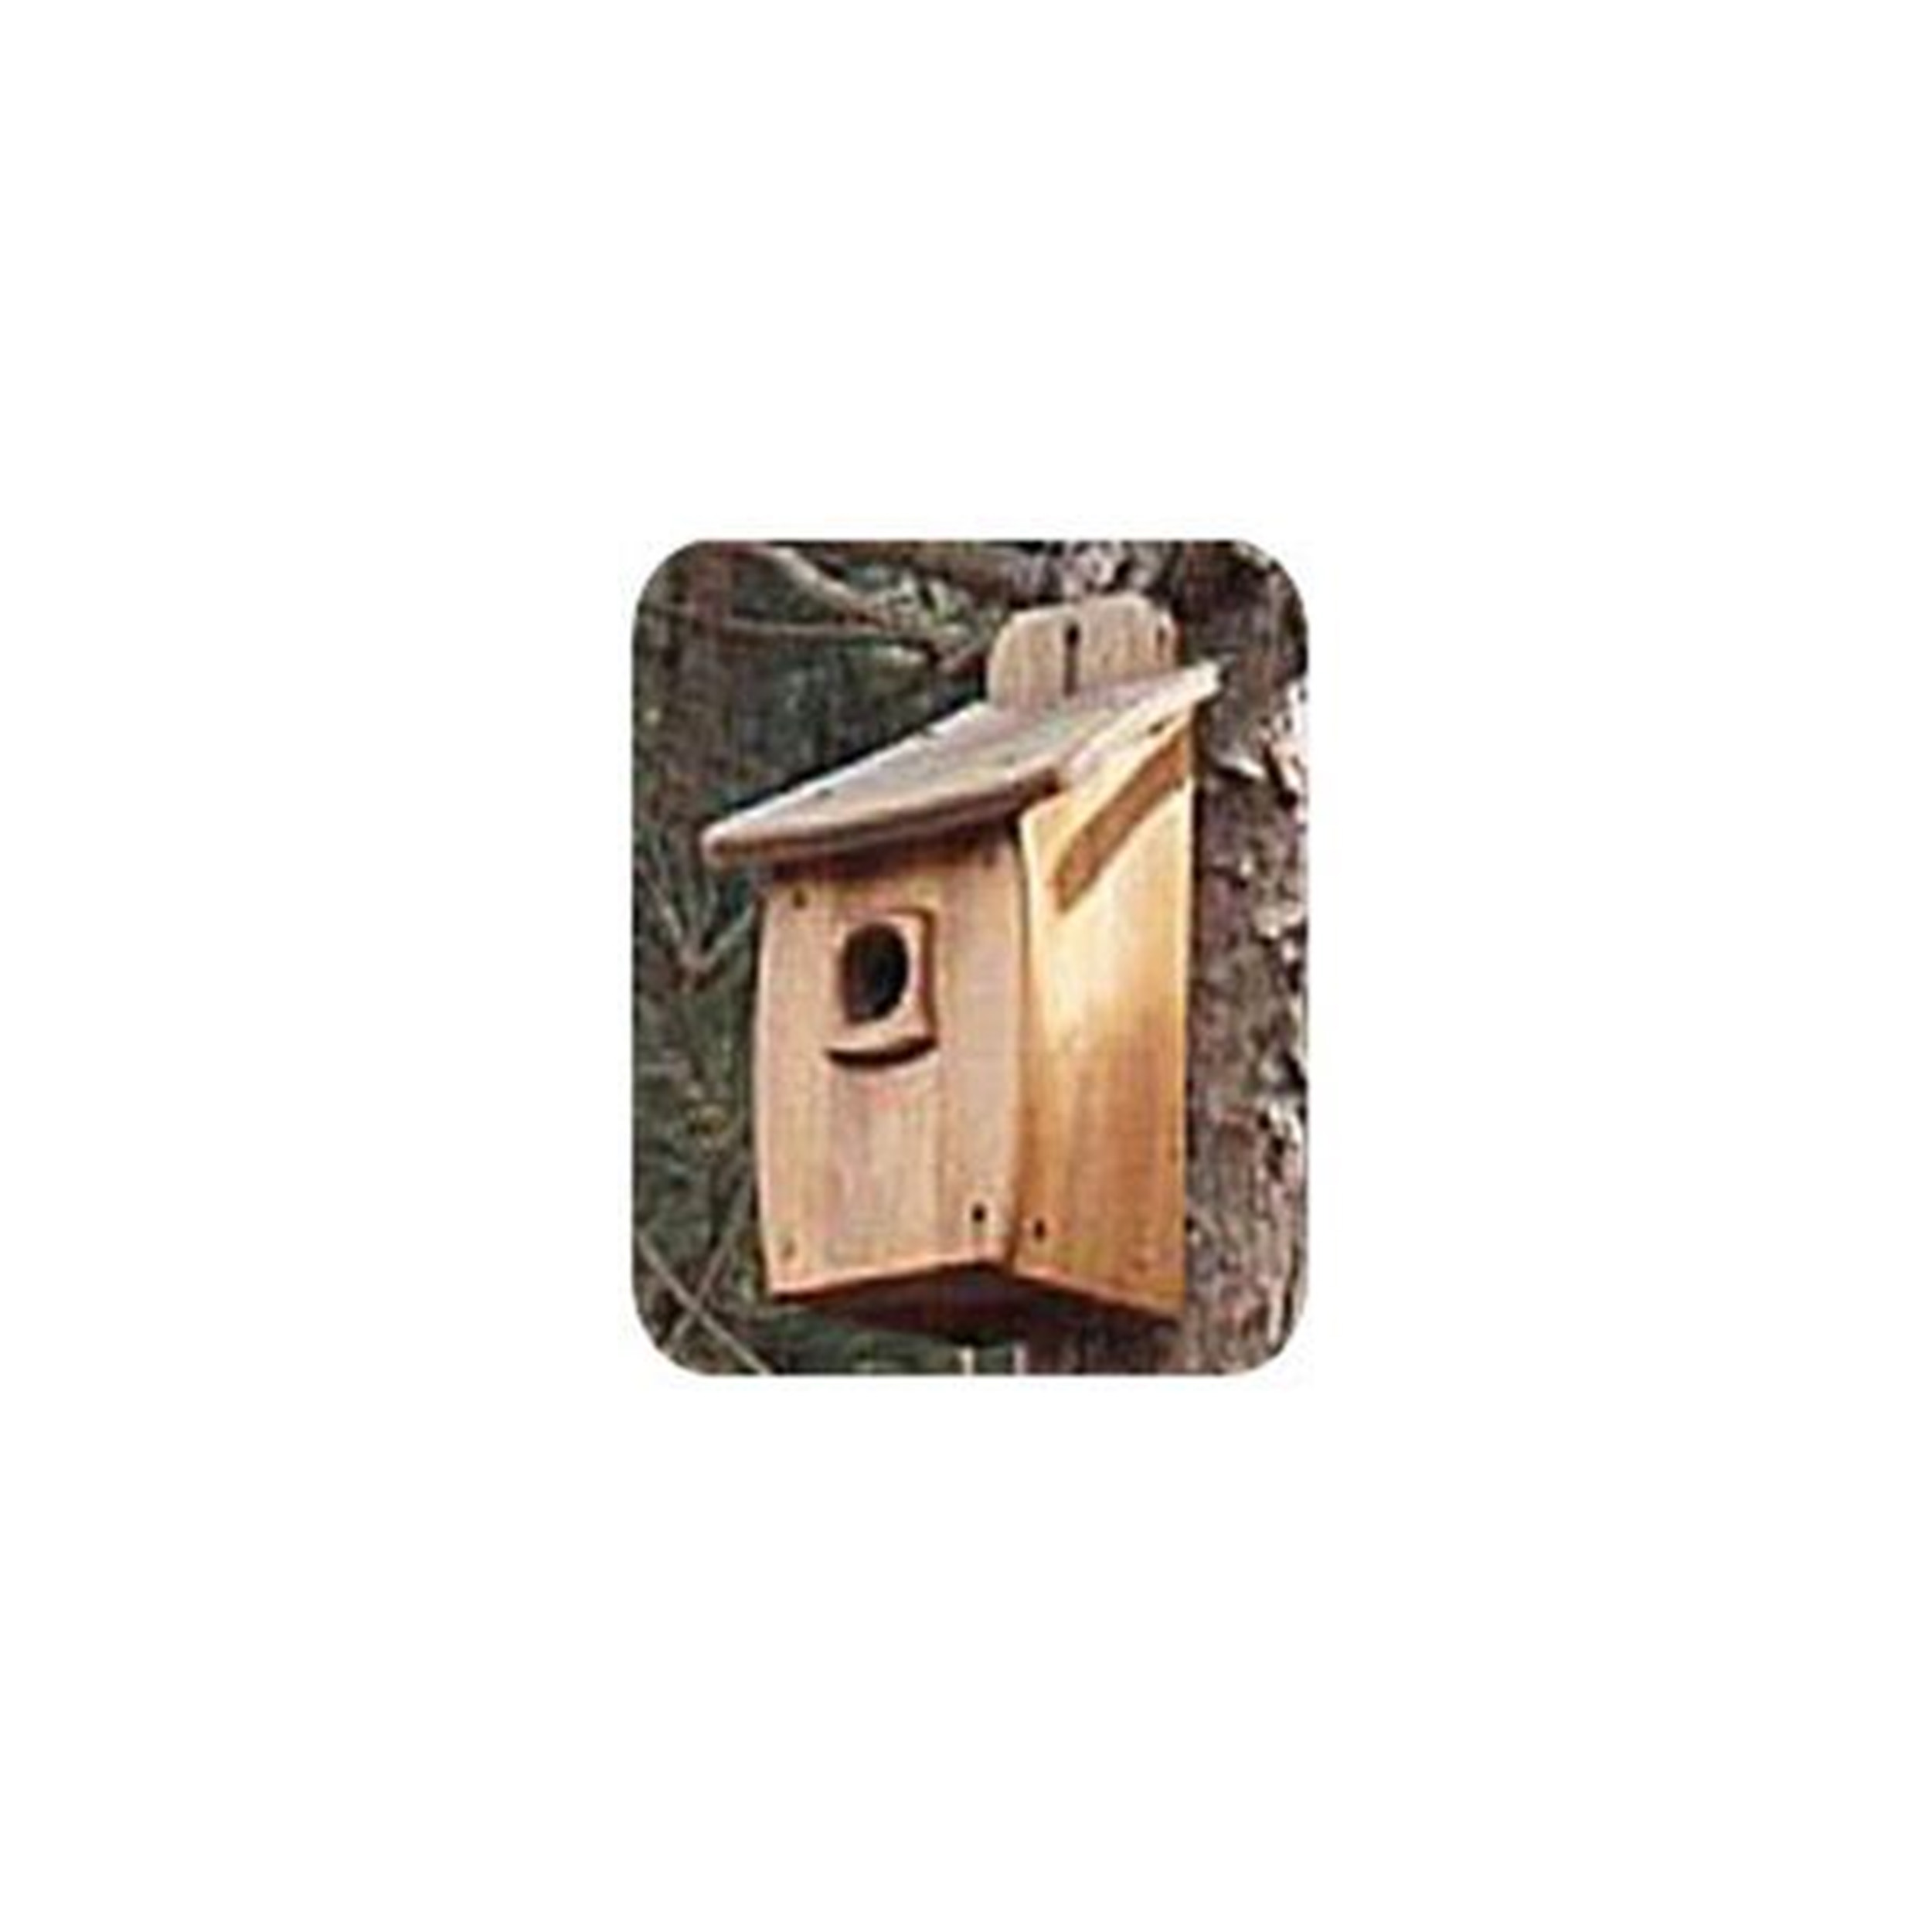 Woodworking Project Paper Plan to Build Extra Large Birdhouse